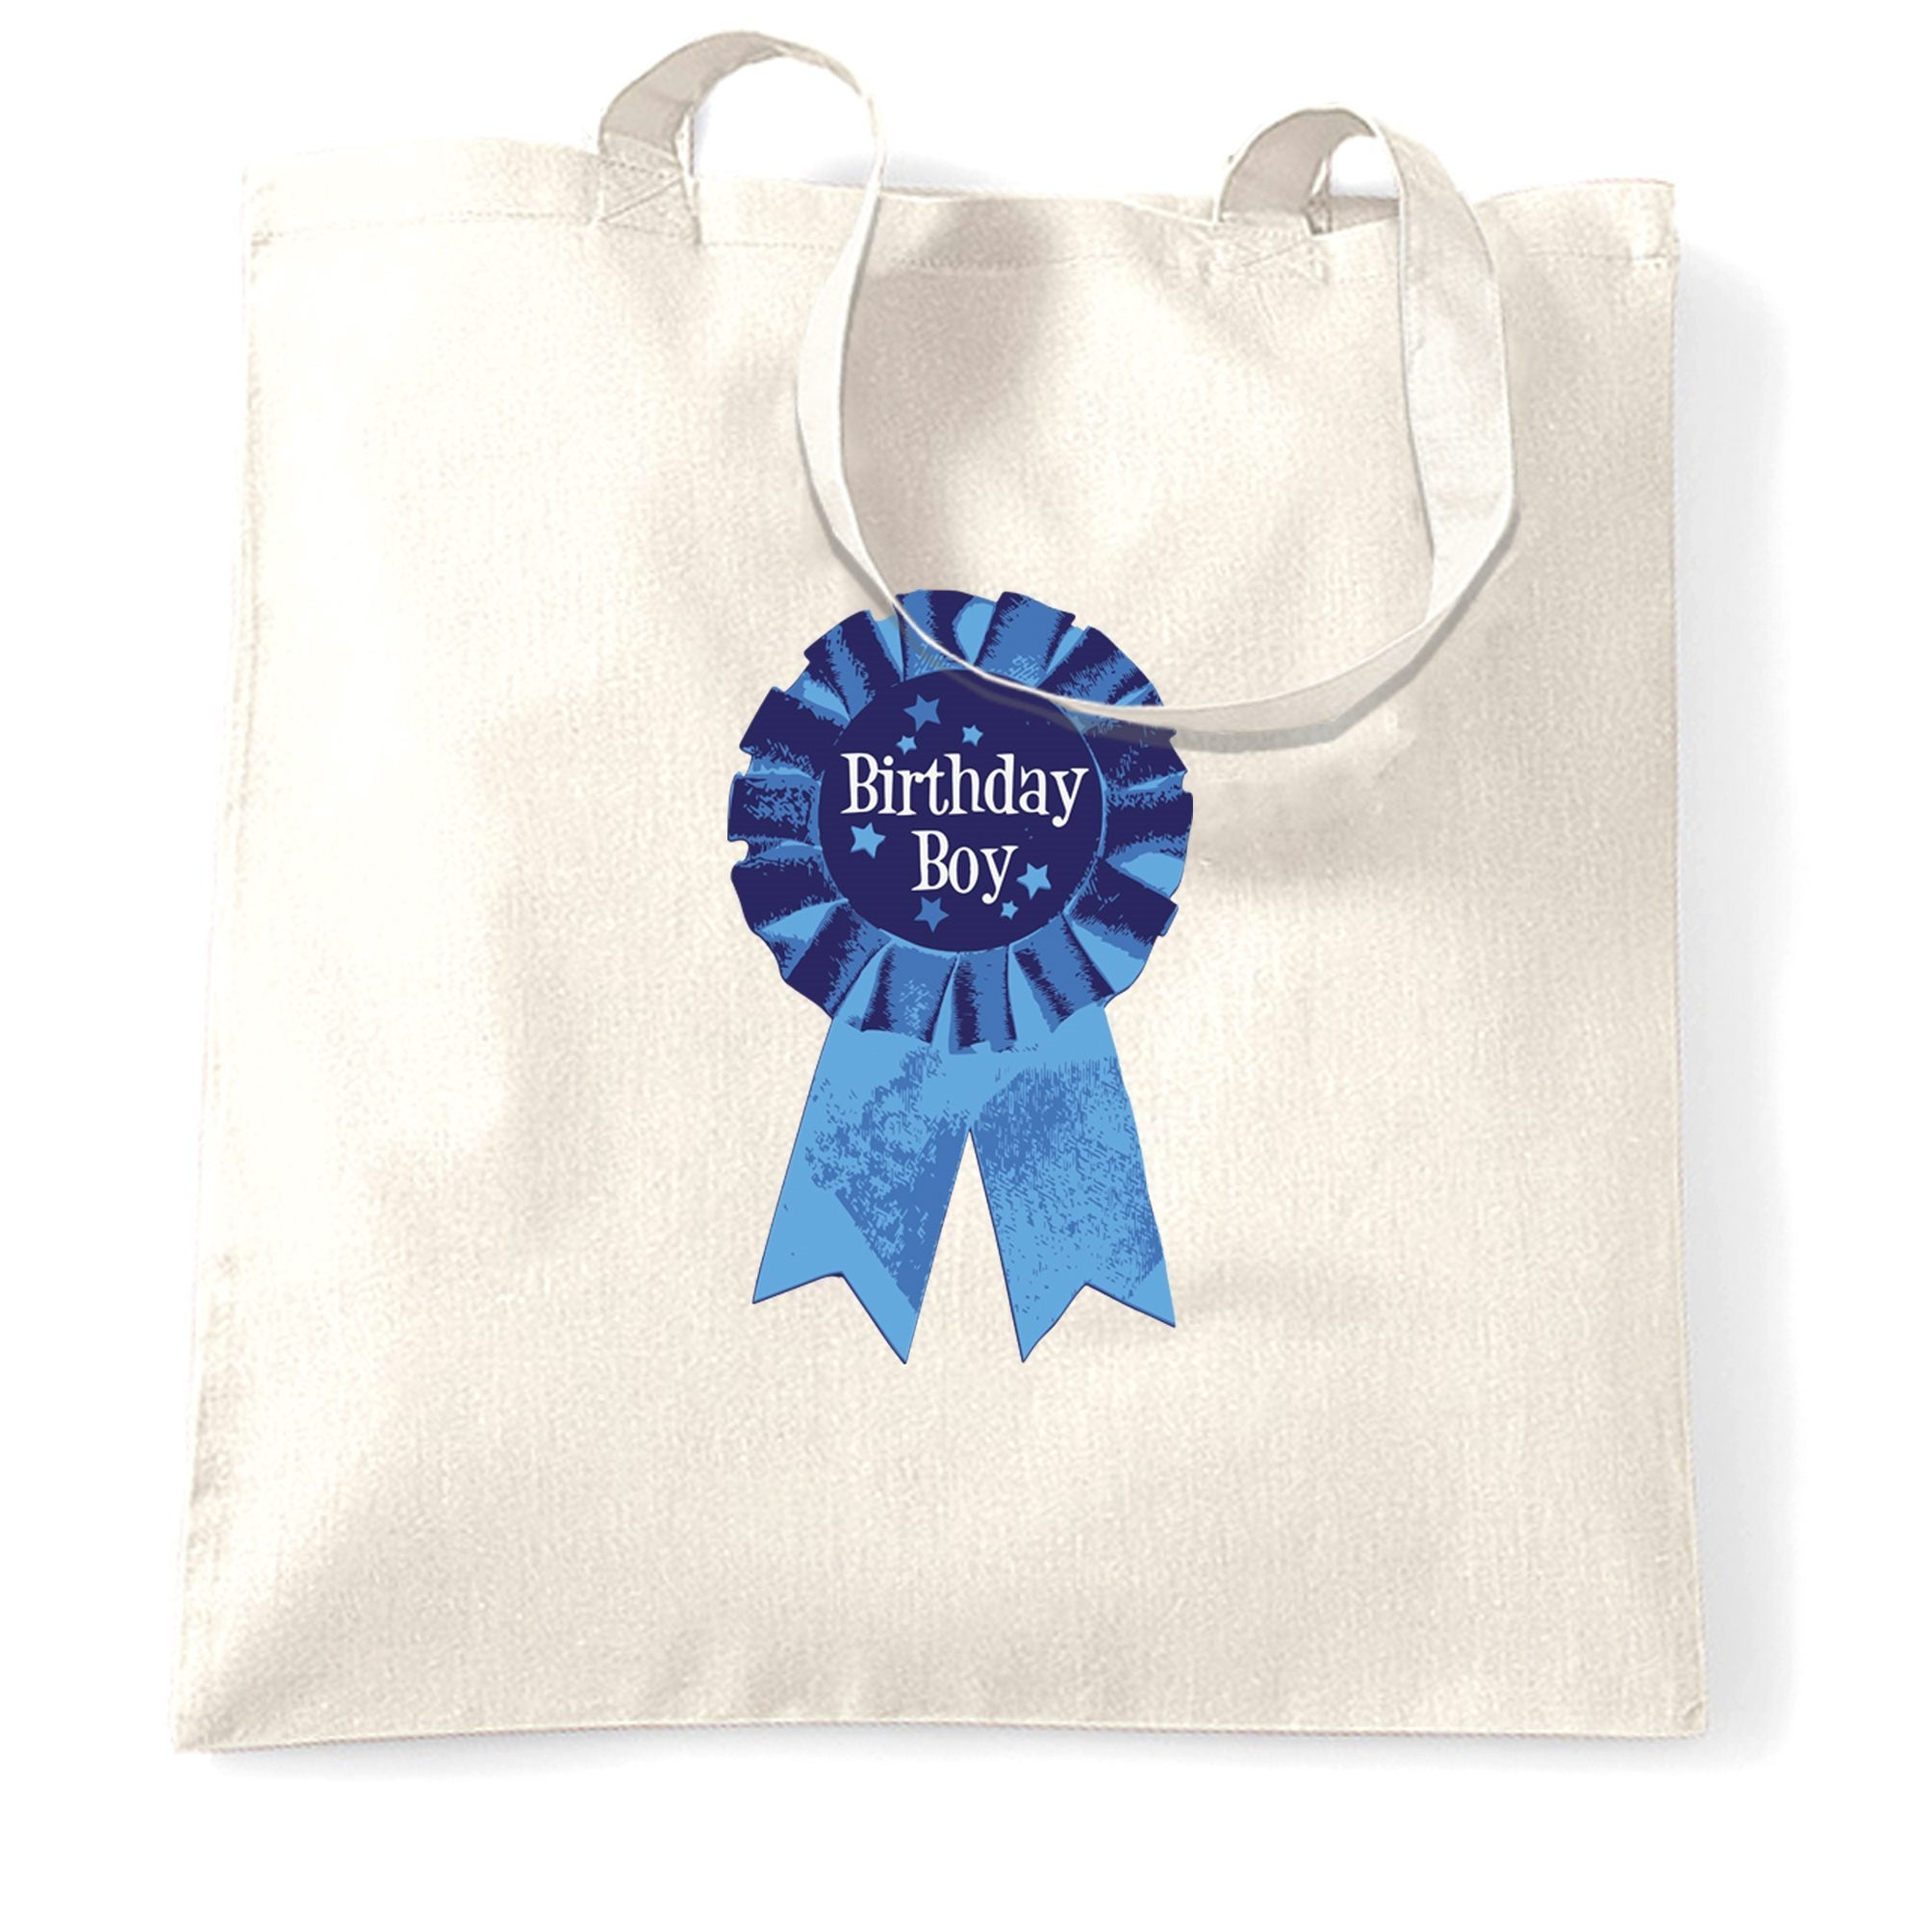 Novelty Party Tote Bag Birthday Boy Pocket Print Badge